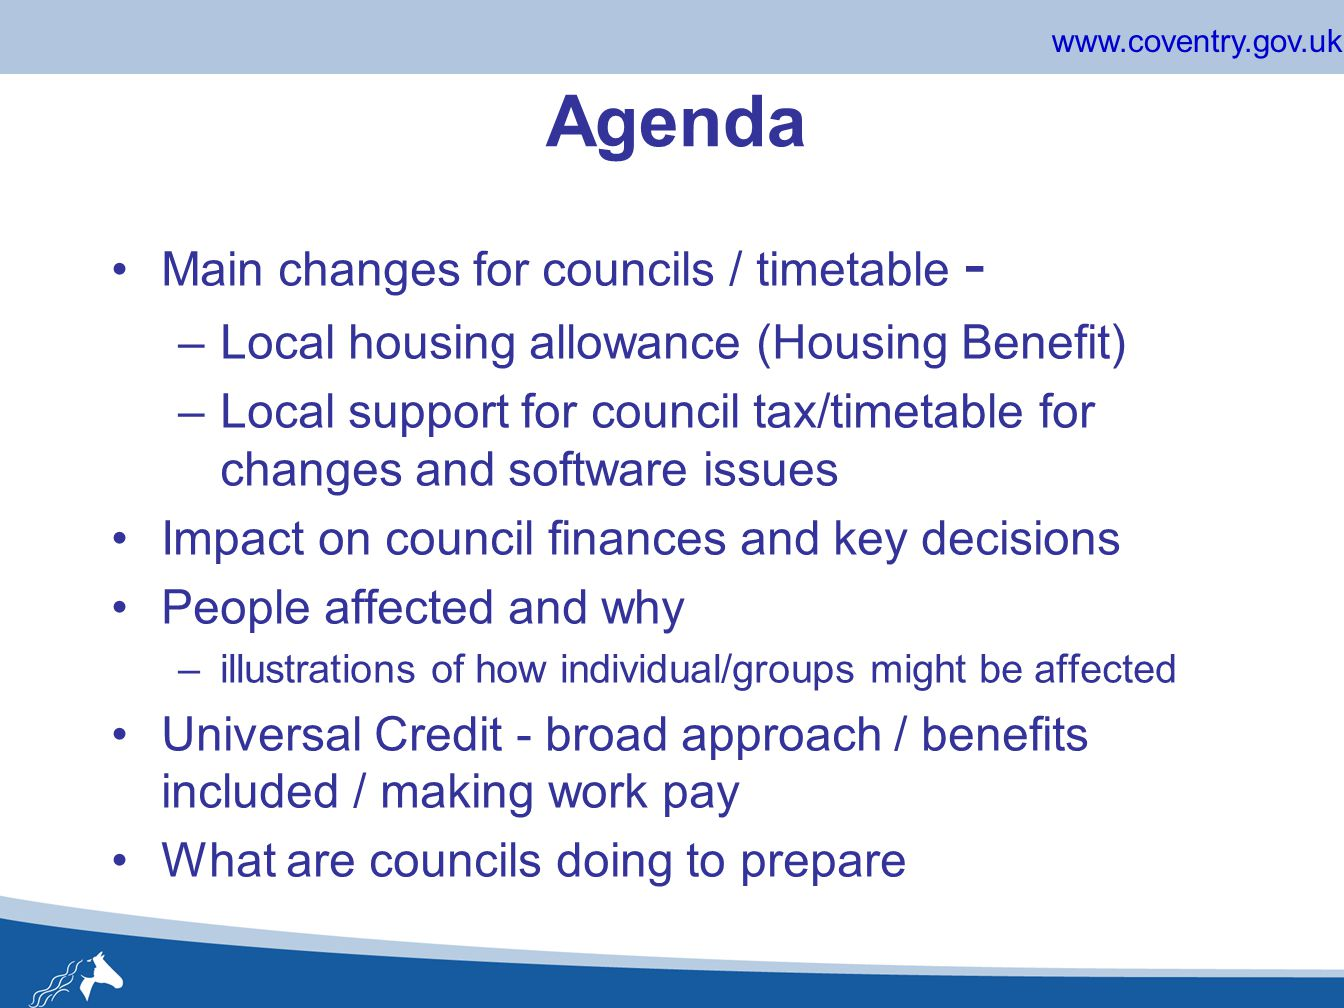 www.coventry.gov.uk Agenda Main changes for councils / timetable - –Local housing allowance (Housing Benefit) –Local support for council tax/timetable for changes and software issues Impact on council finances and key decisions People affected and why –illustrations of how individual/groups might be affected Universal Credit - broad approach / benefits included / making work pay What are councils doing to prepare